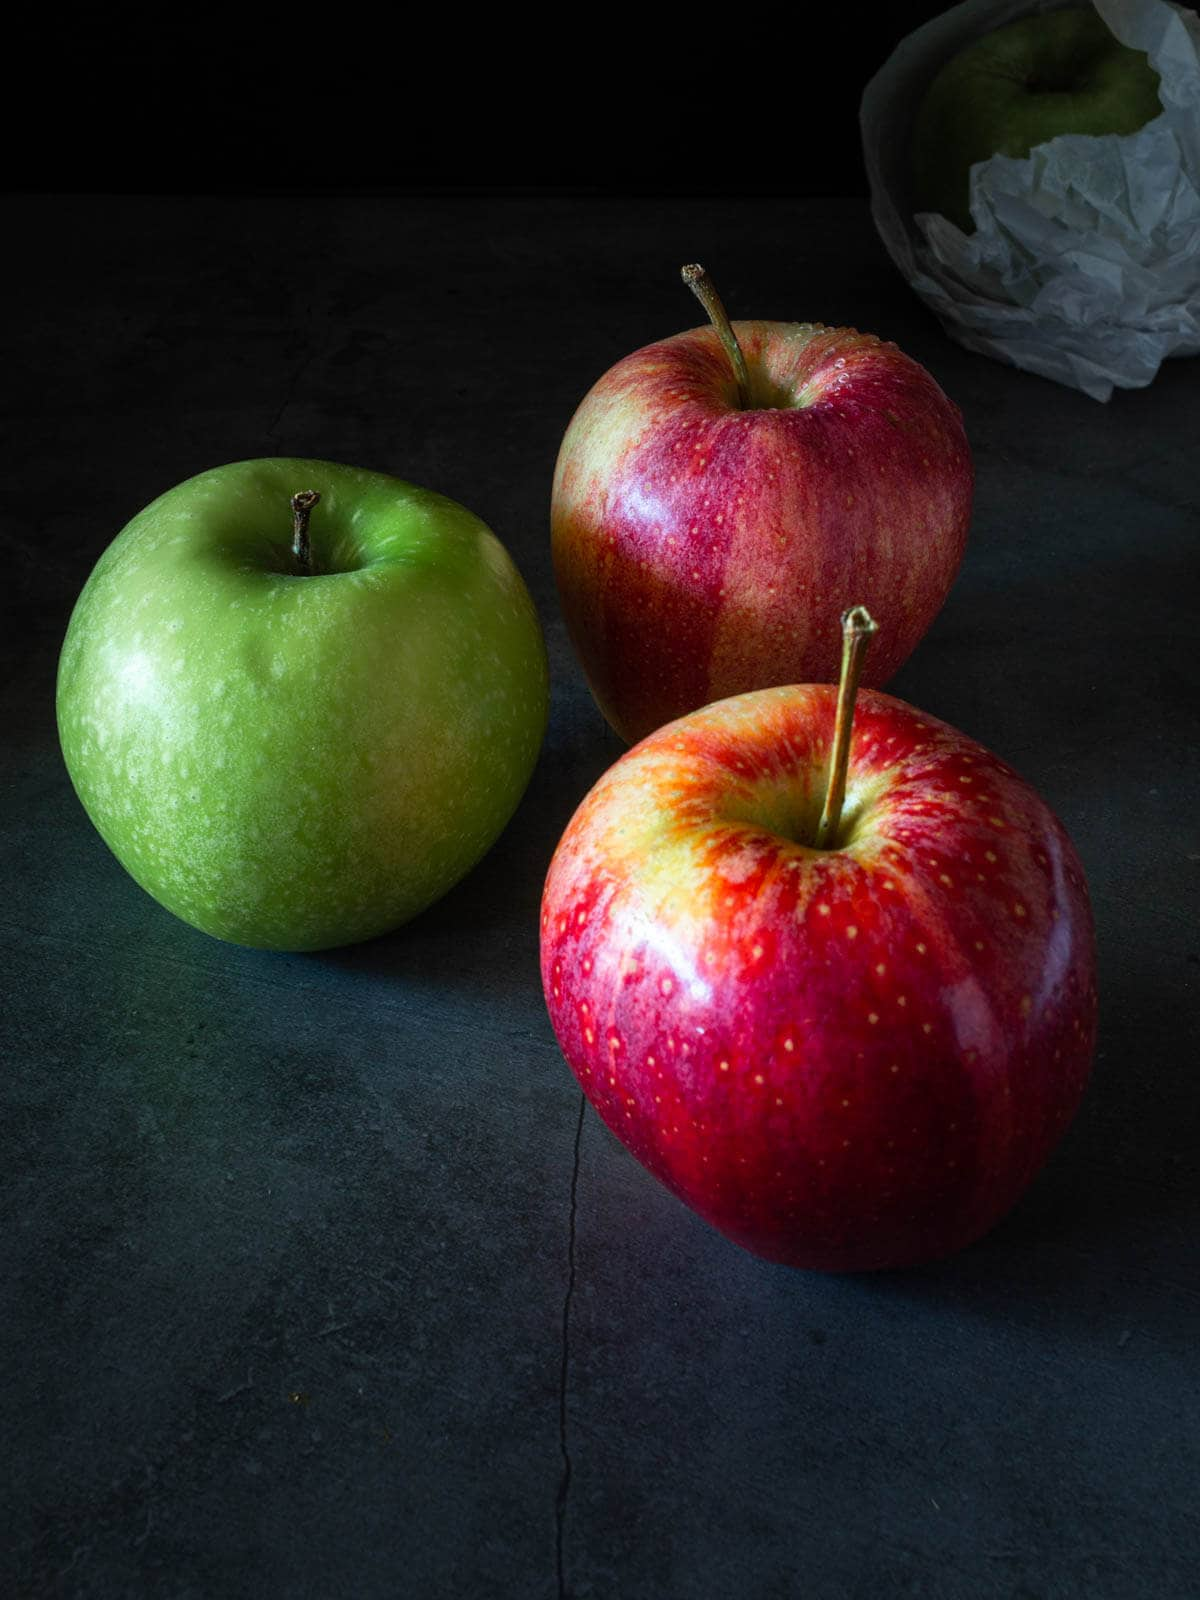 Unsweetened applesauce green and gala apples